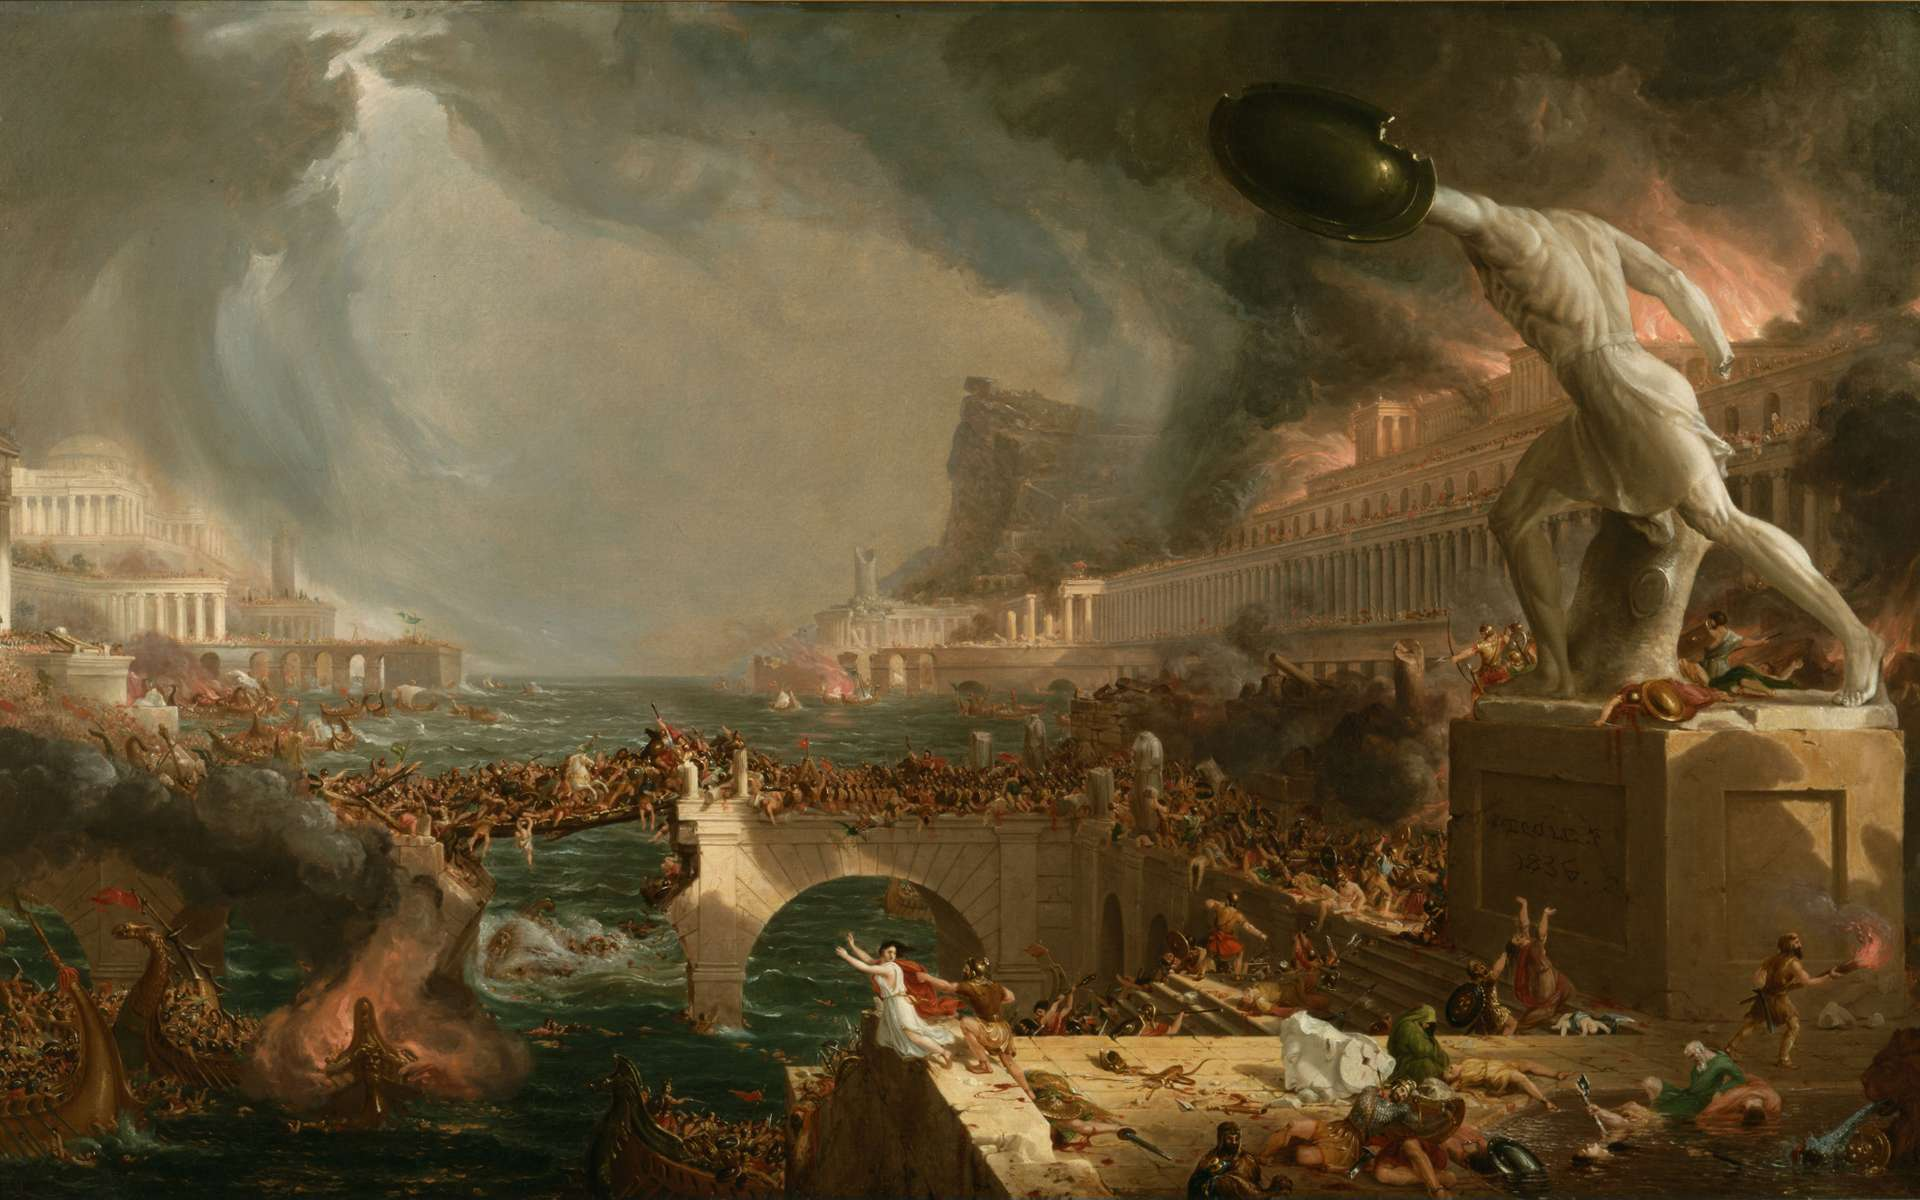 Quelles sont les causes de la chute de l'Empire romain d'Occident. Ici, peinture La Destruction (1836), de Thomas Cole. © Thomas Cole, Wikimedia Commons, DP